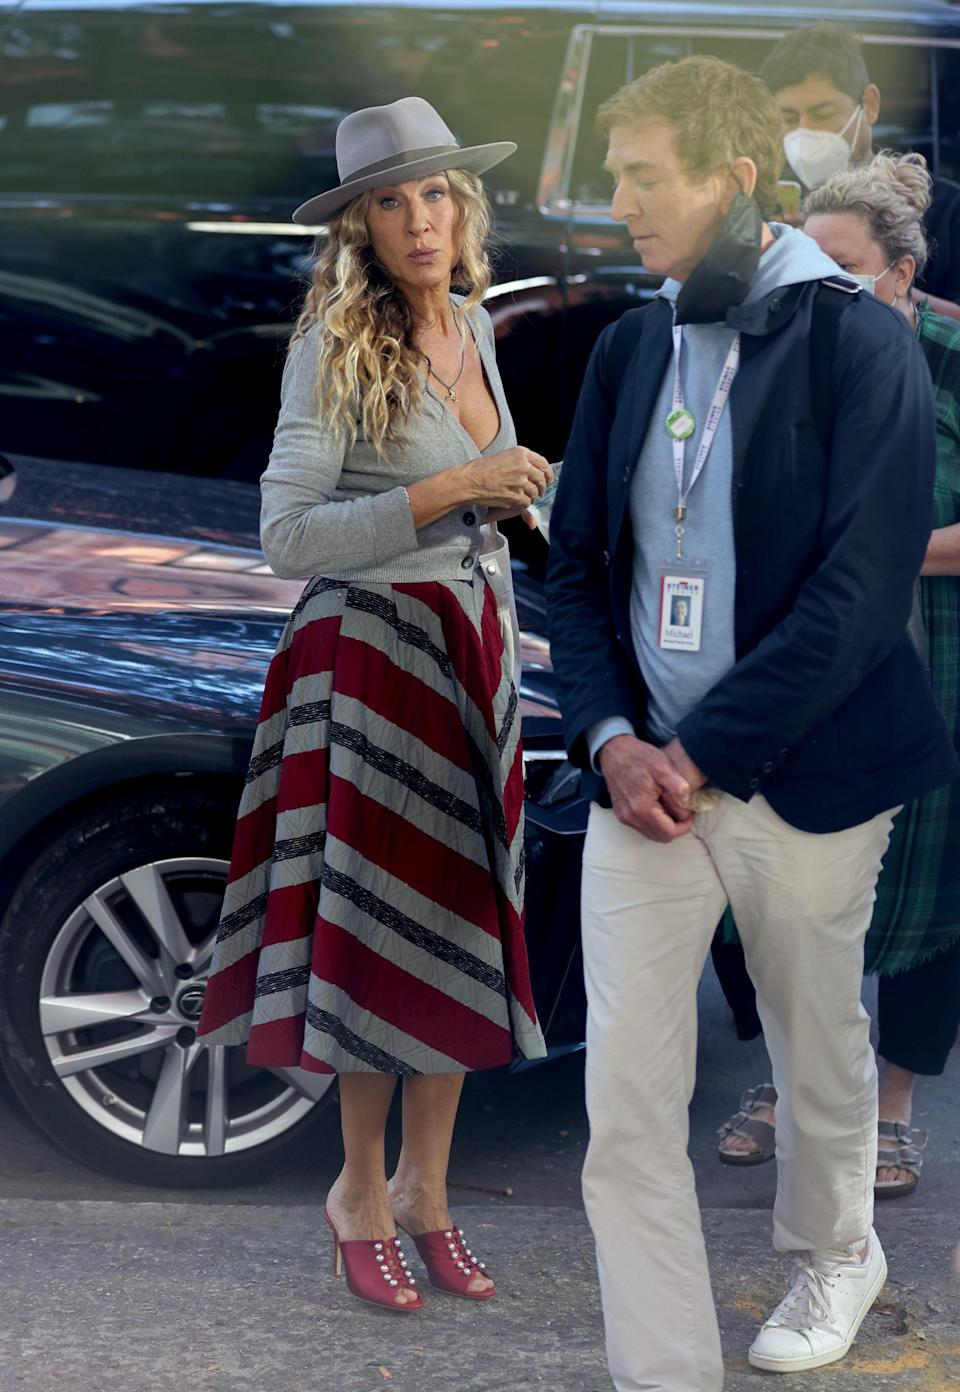 """Sarah Jessica Parker and director Michael Patrick King talk on the set of """"And Just Like That…"""" - Credit: Jose Perez/Bauergriffin.com / MEGA"""